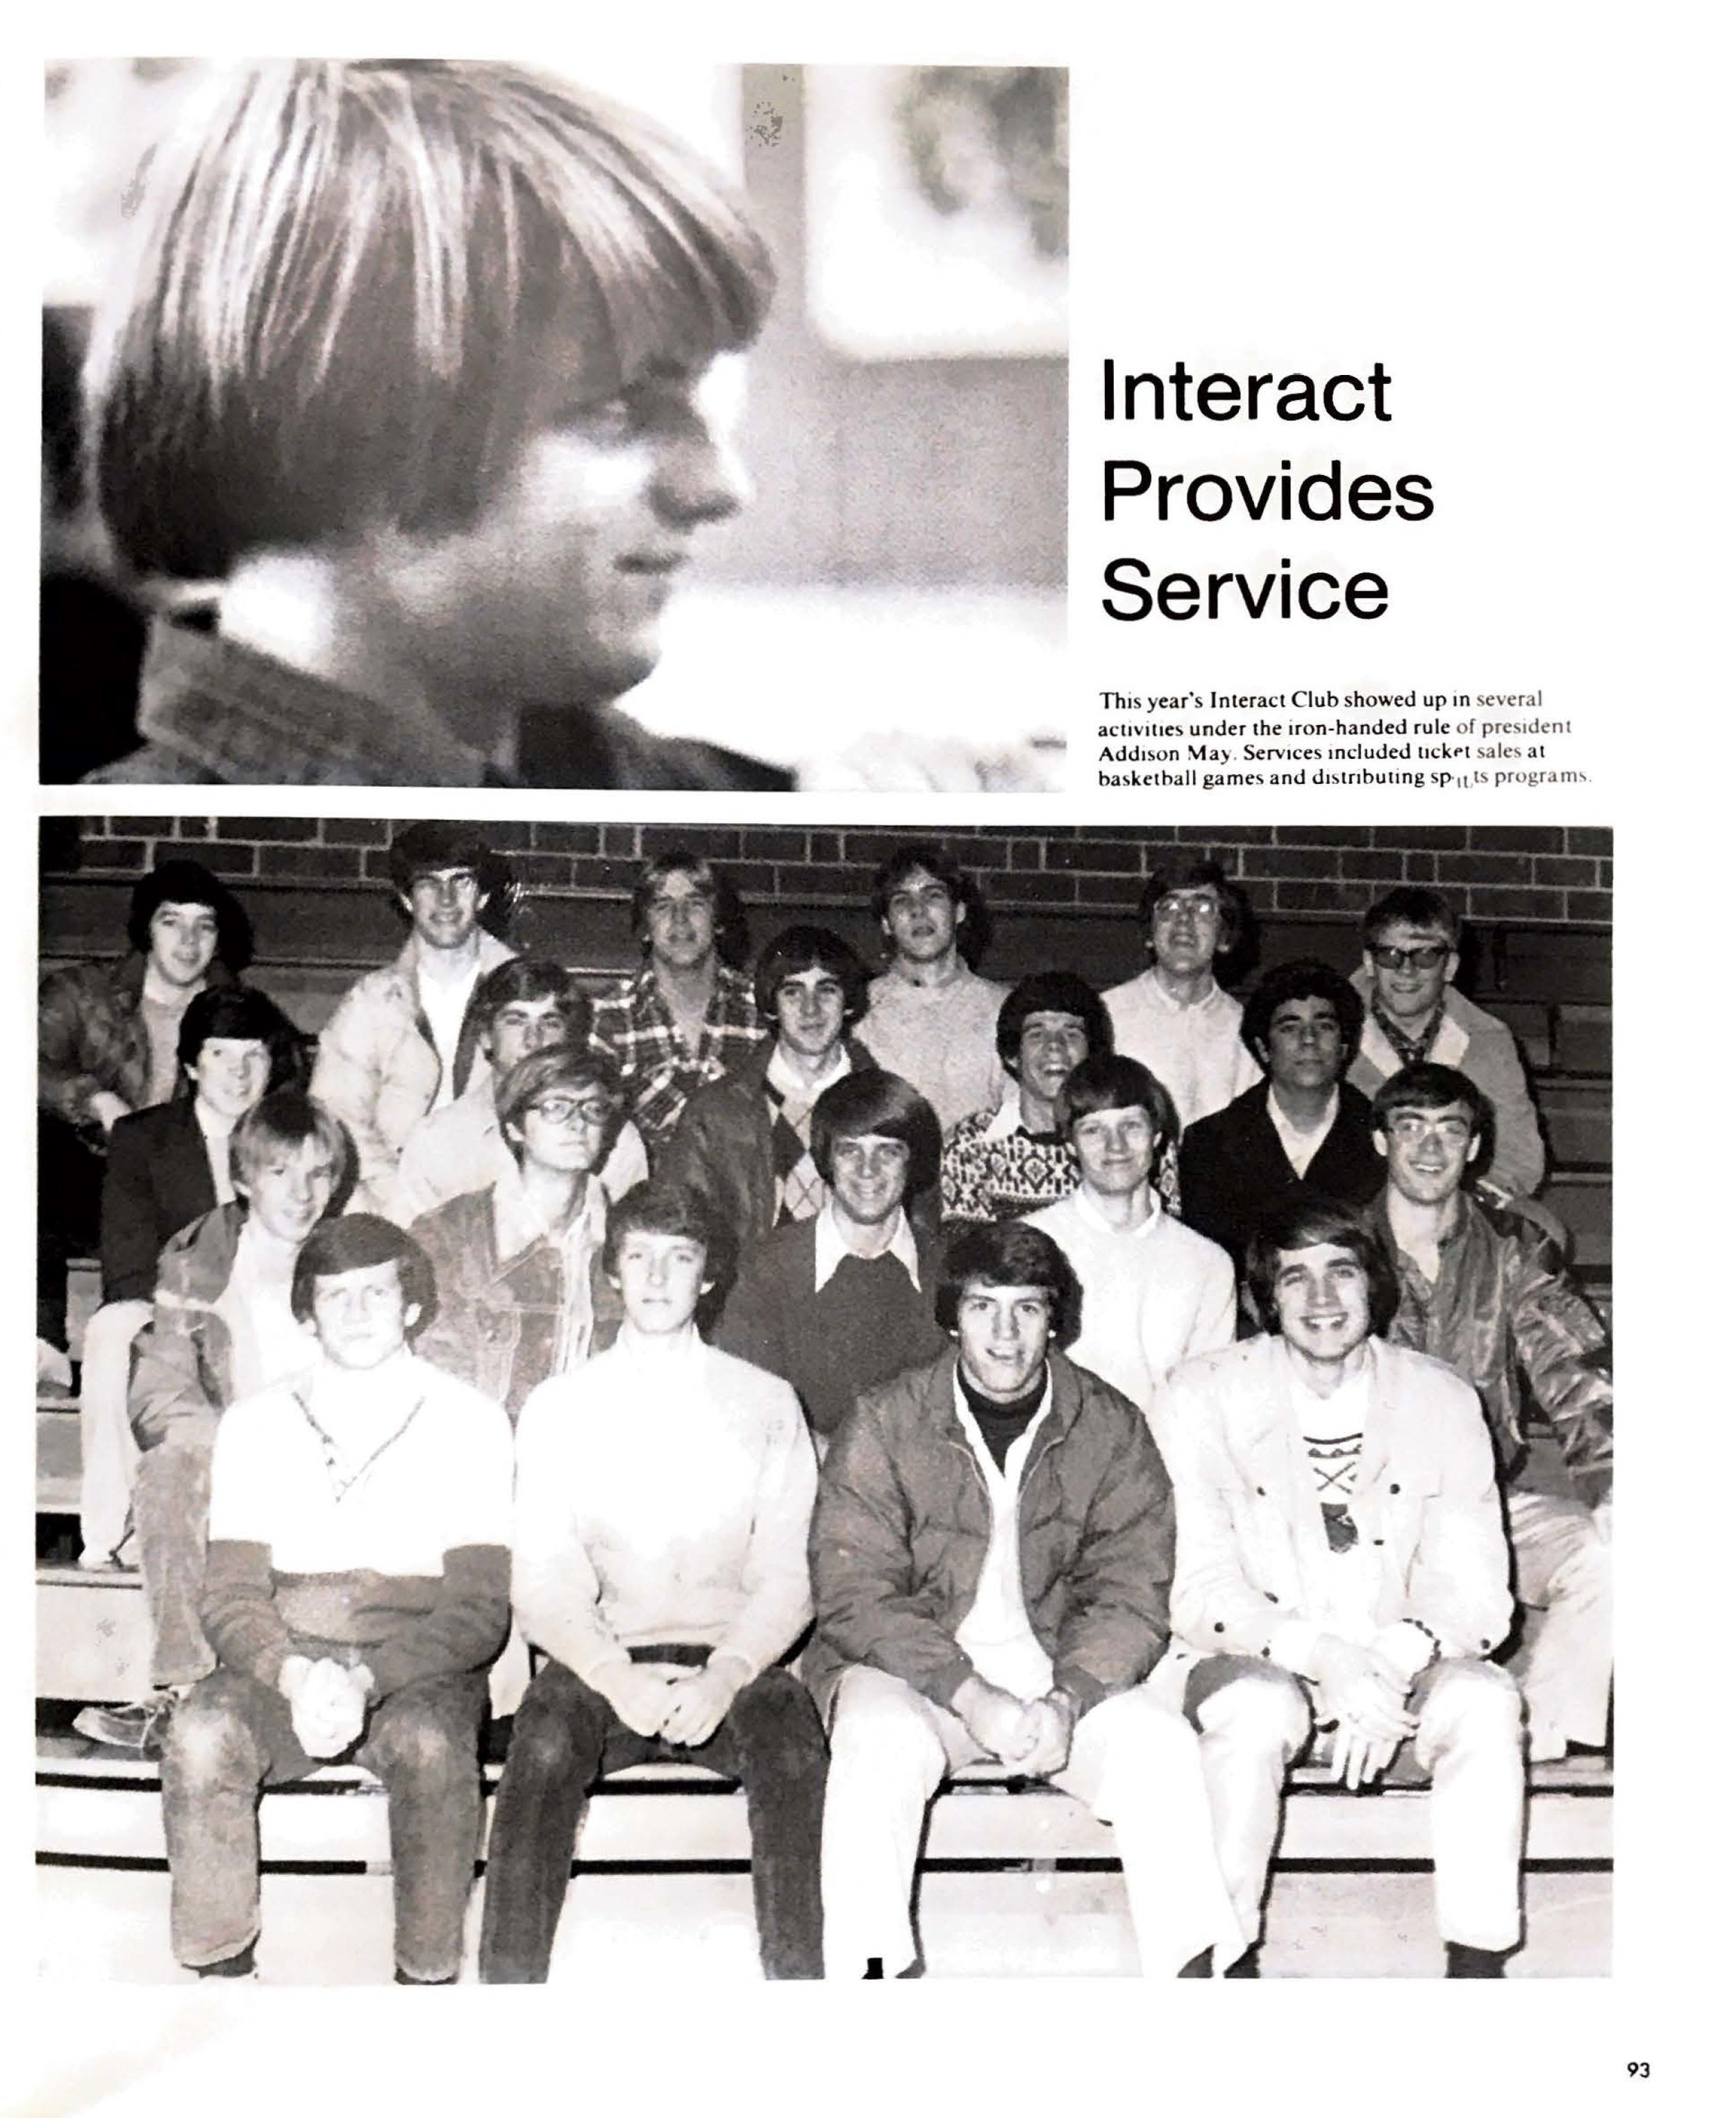 1978 Interact Club